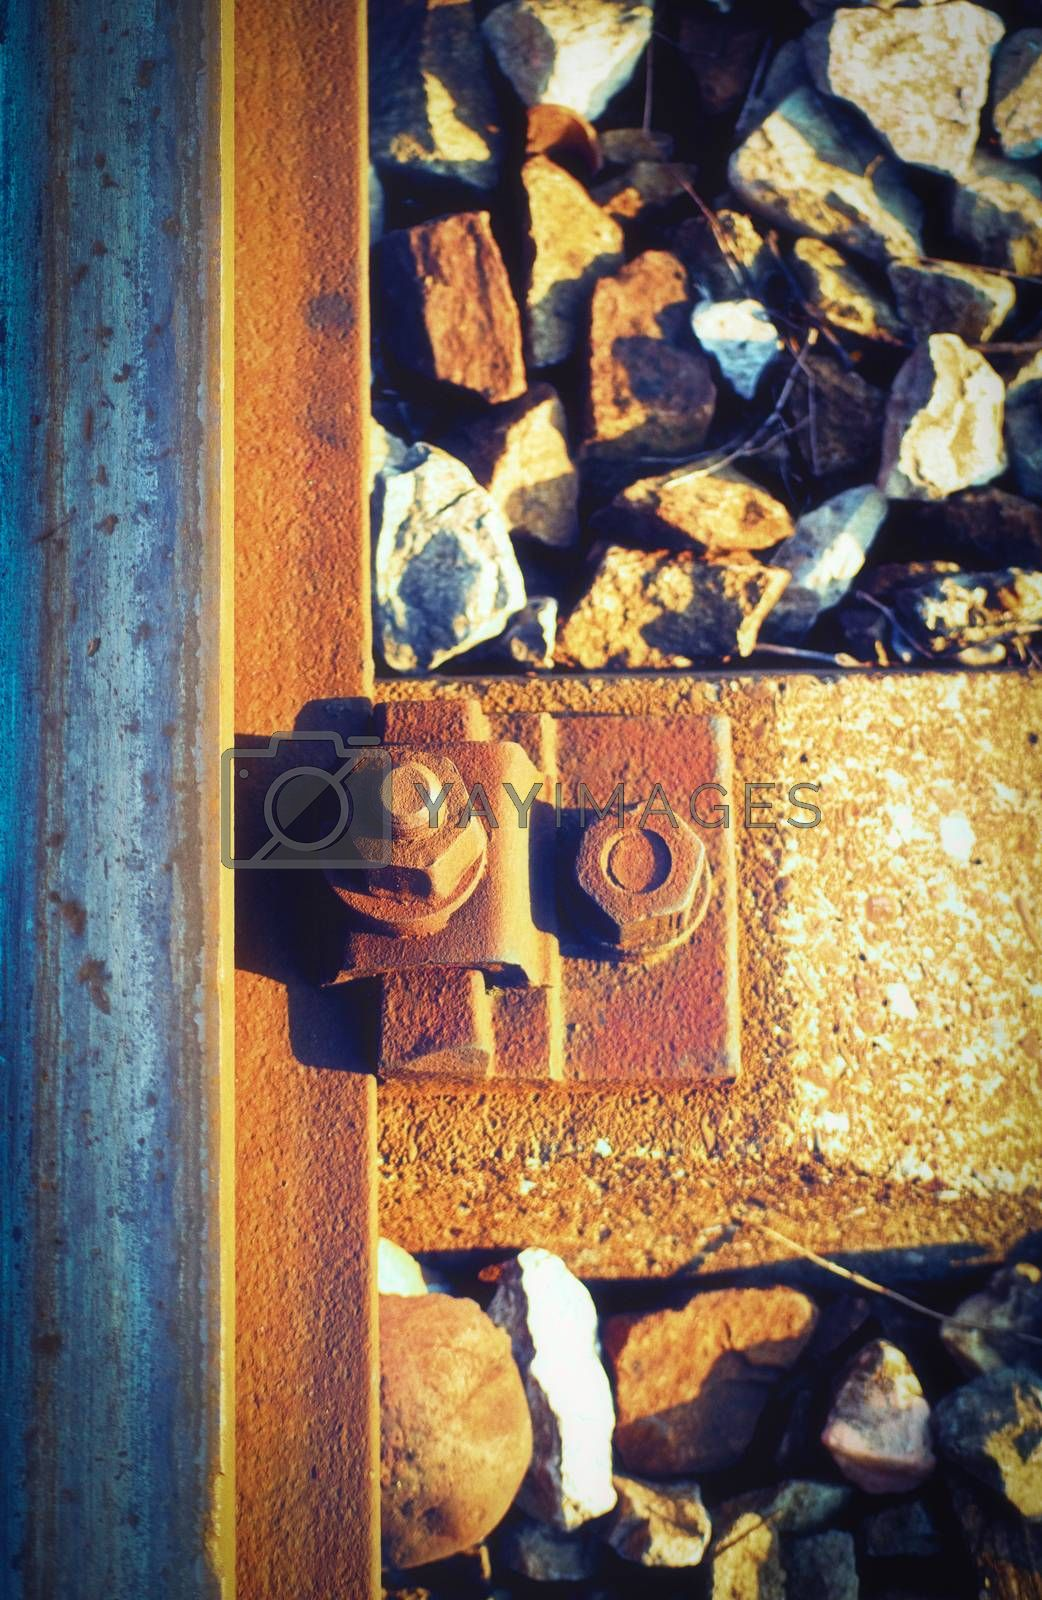 Close up and macro outdoor view of a rusty bolt and screw nut next to a rusty rail steel beam and stones next to the railway.